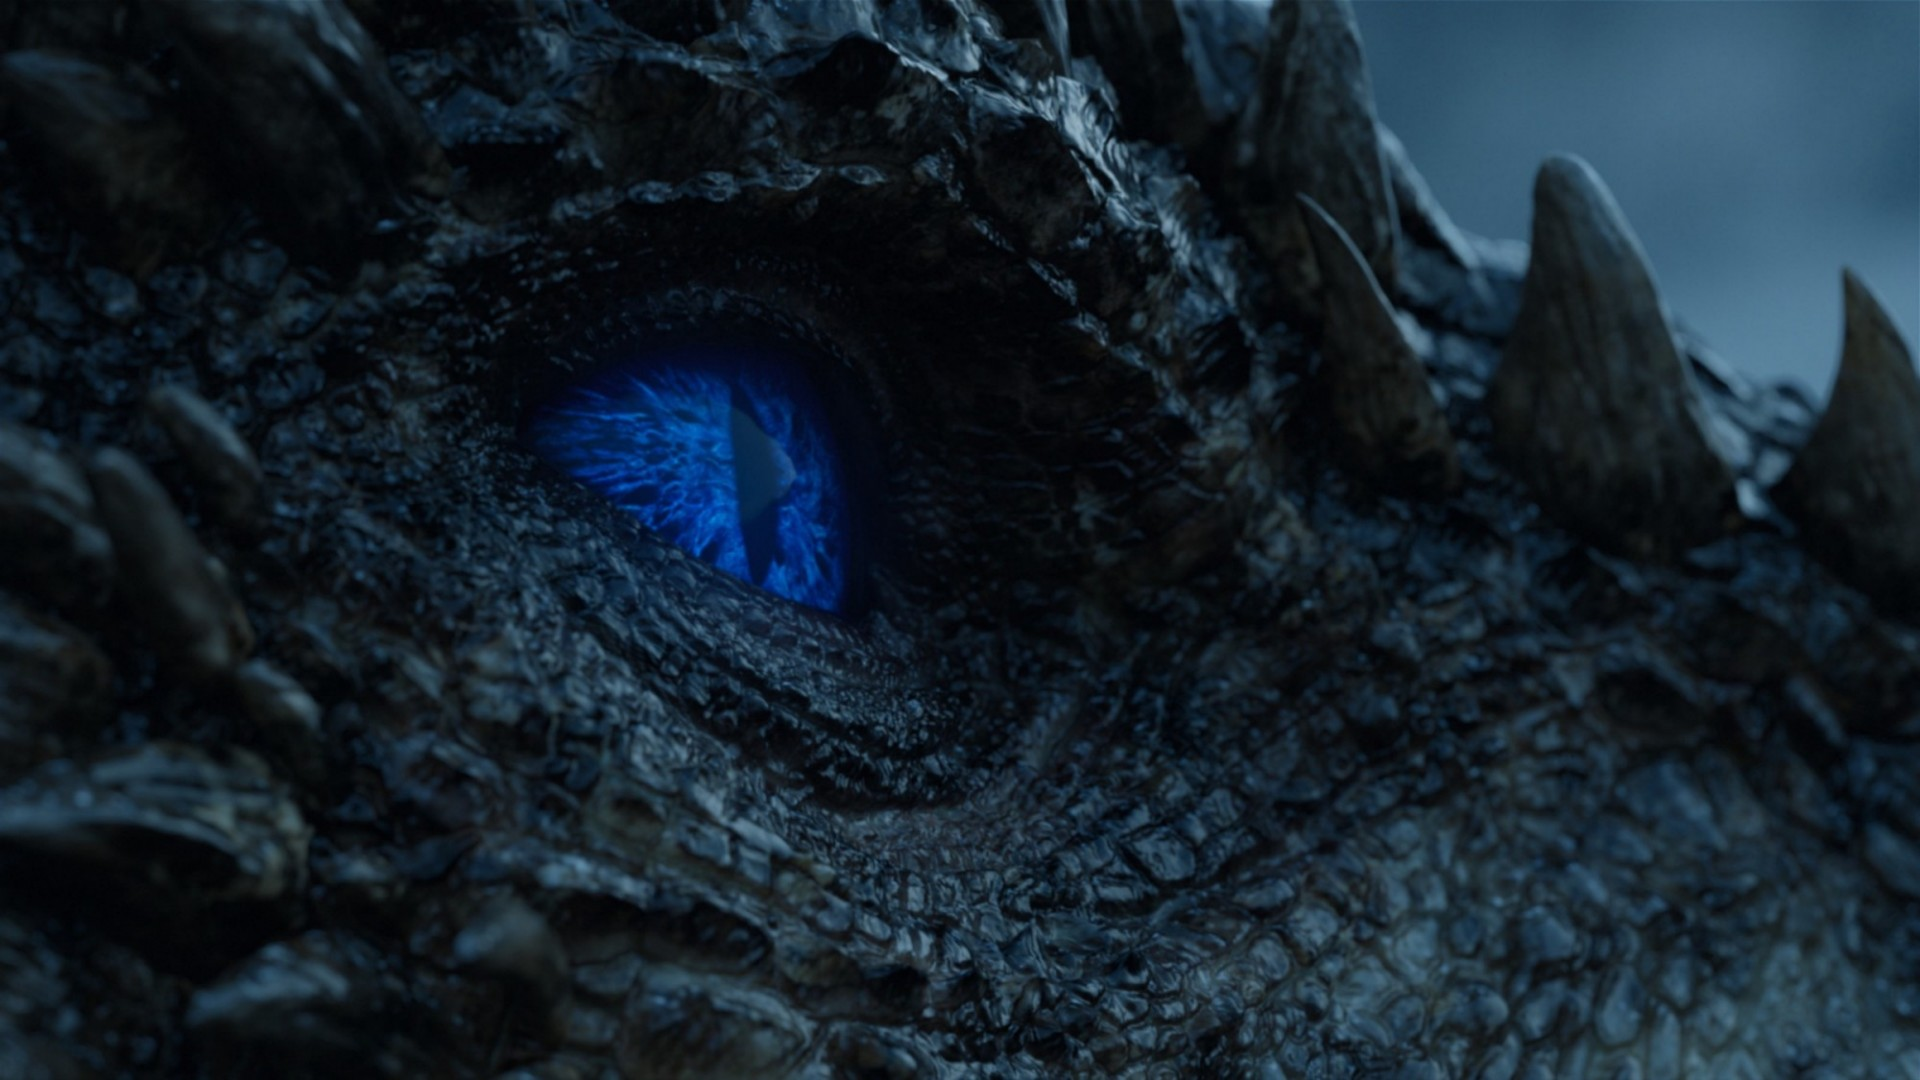 A close-up image of a dragon's scaly face and stark blue eye.